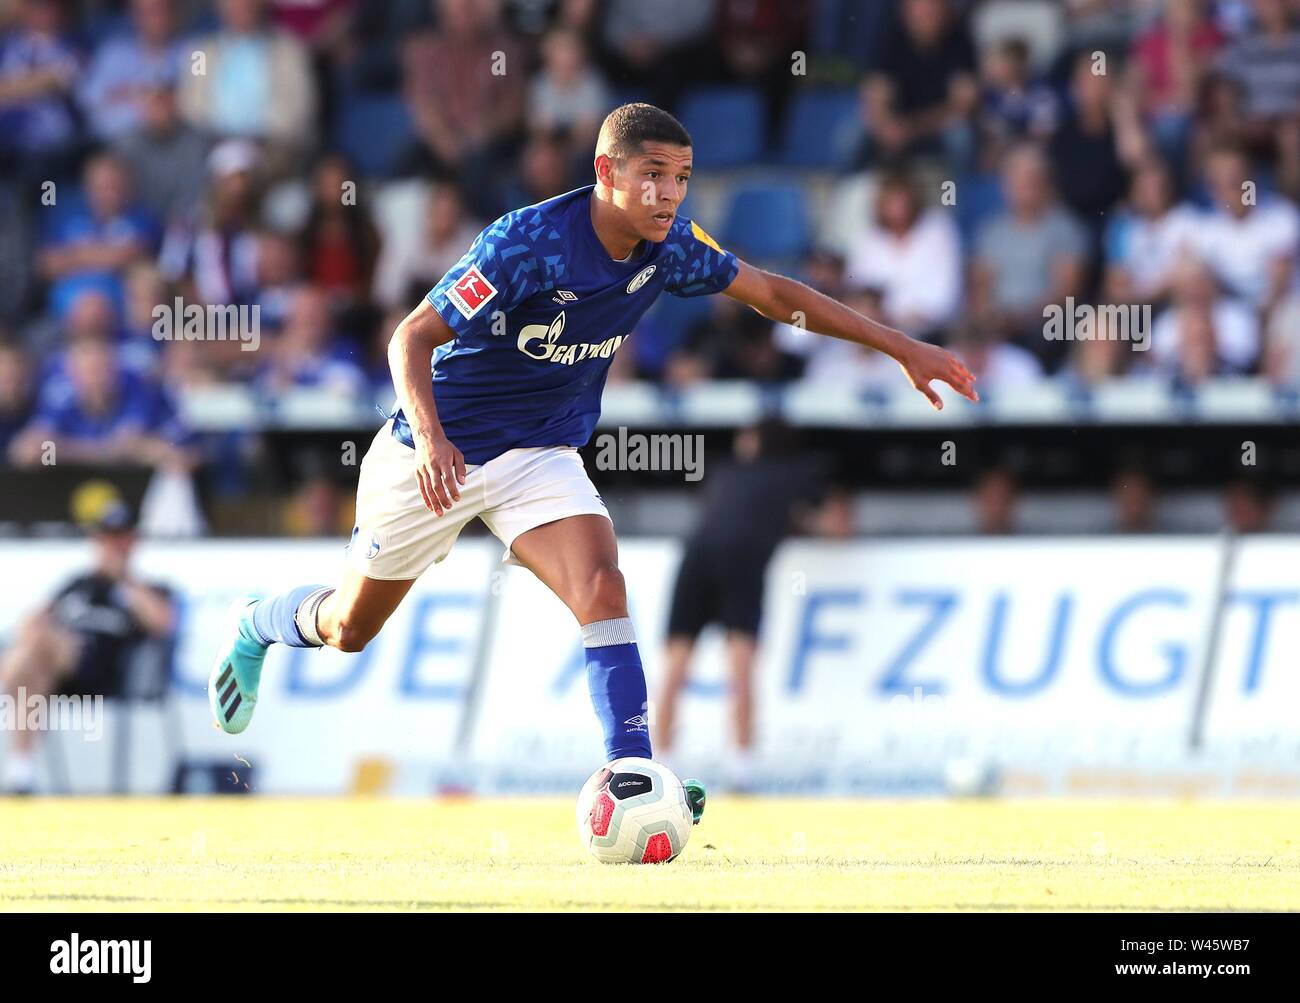 Lotte, Deutschland. 19th July, 2019. firo: 19.07.2019, football, 1.Bundesliga, season 2019/2020, friendly match, FC Schalke 04 - Norwich City Amine HARIT, Schalke, single action | usage worldwide Credit: dpa/Alamy Live News - Stock Image